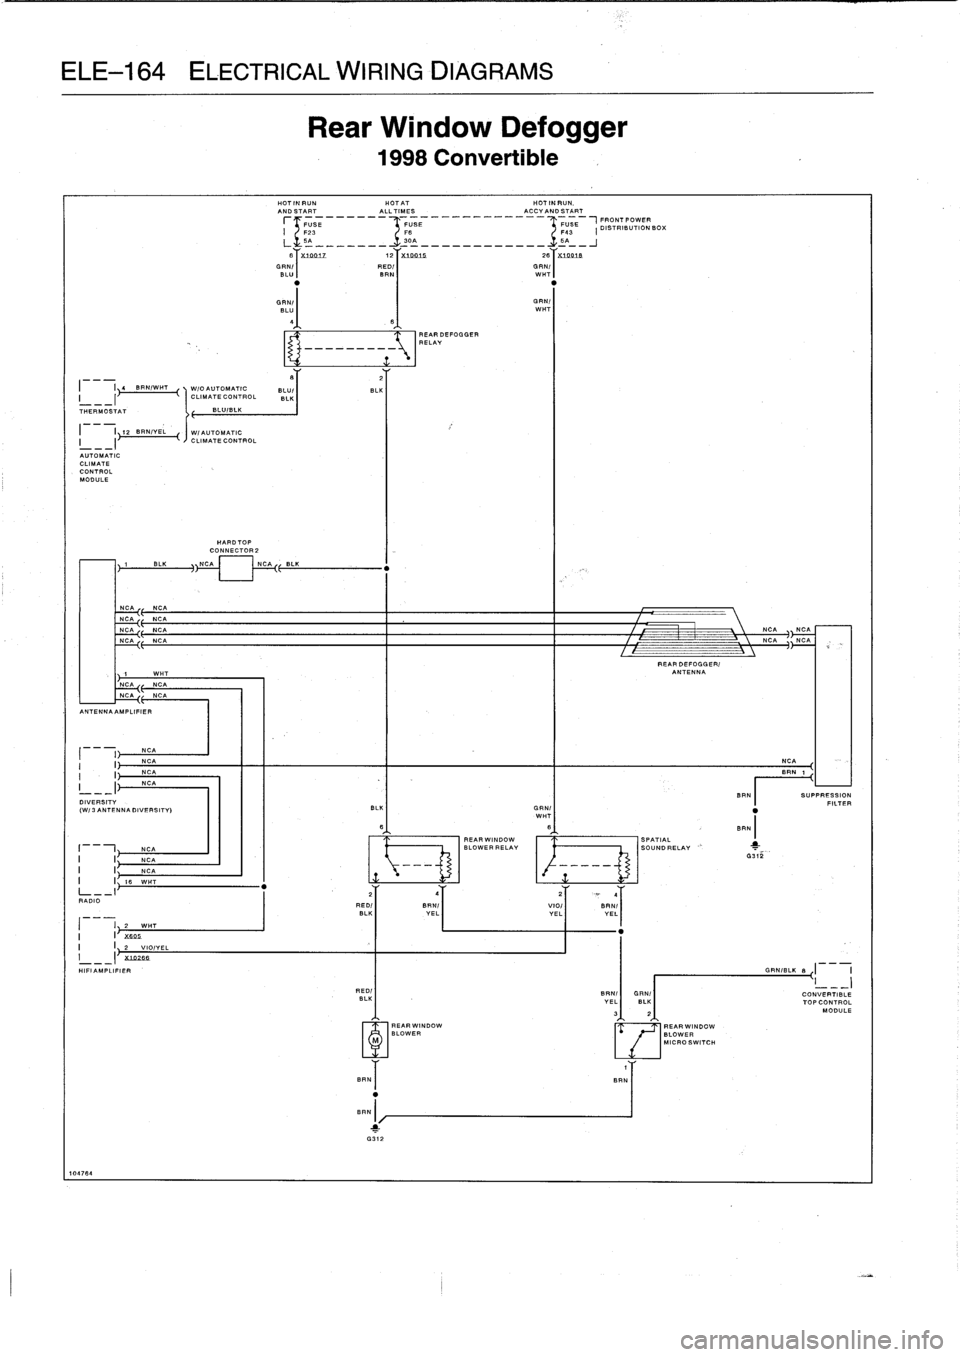 w960_2800 646 bmw m3 1992 e36 workshop manual BMW Stereo Wiring Diagram at gsmportal.co